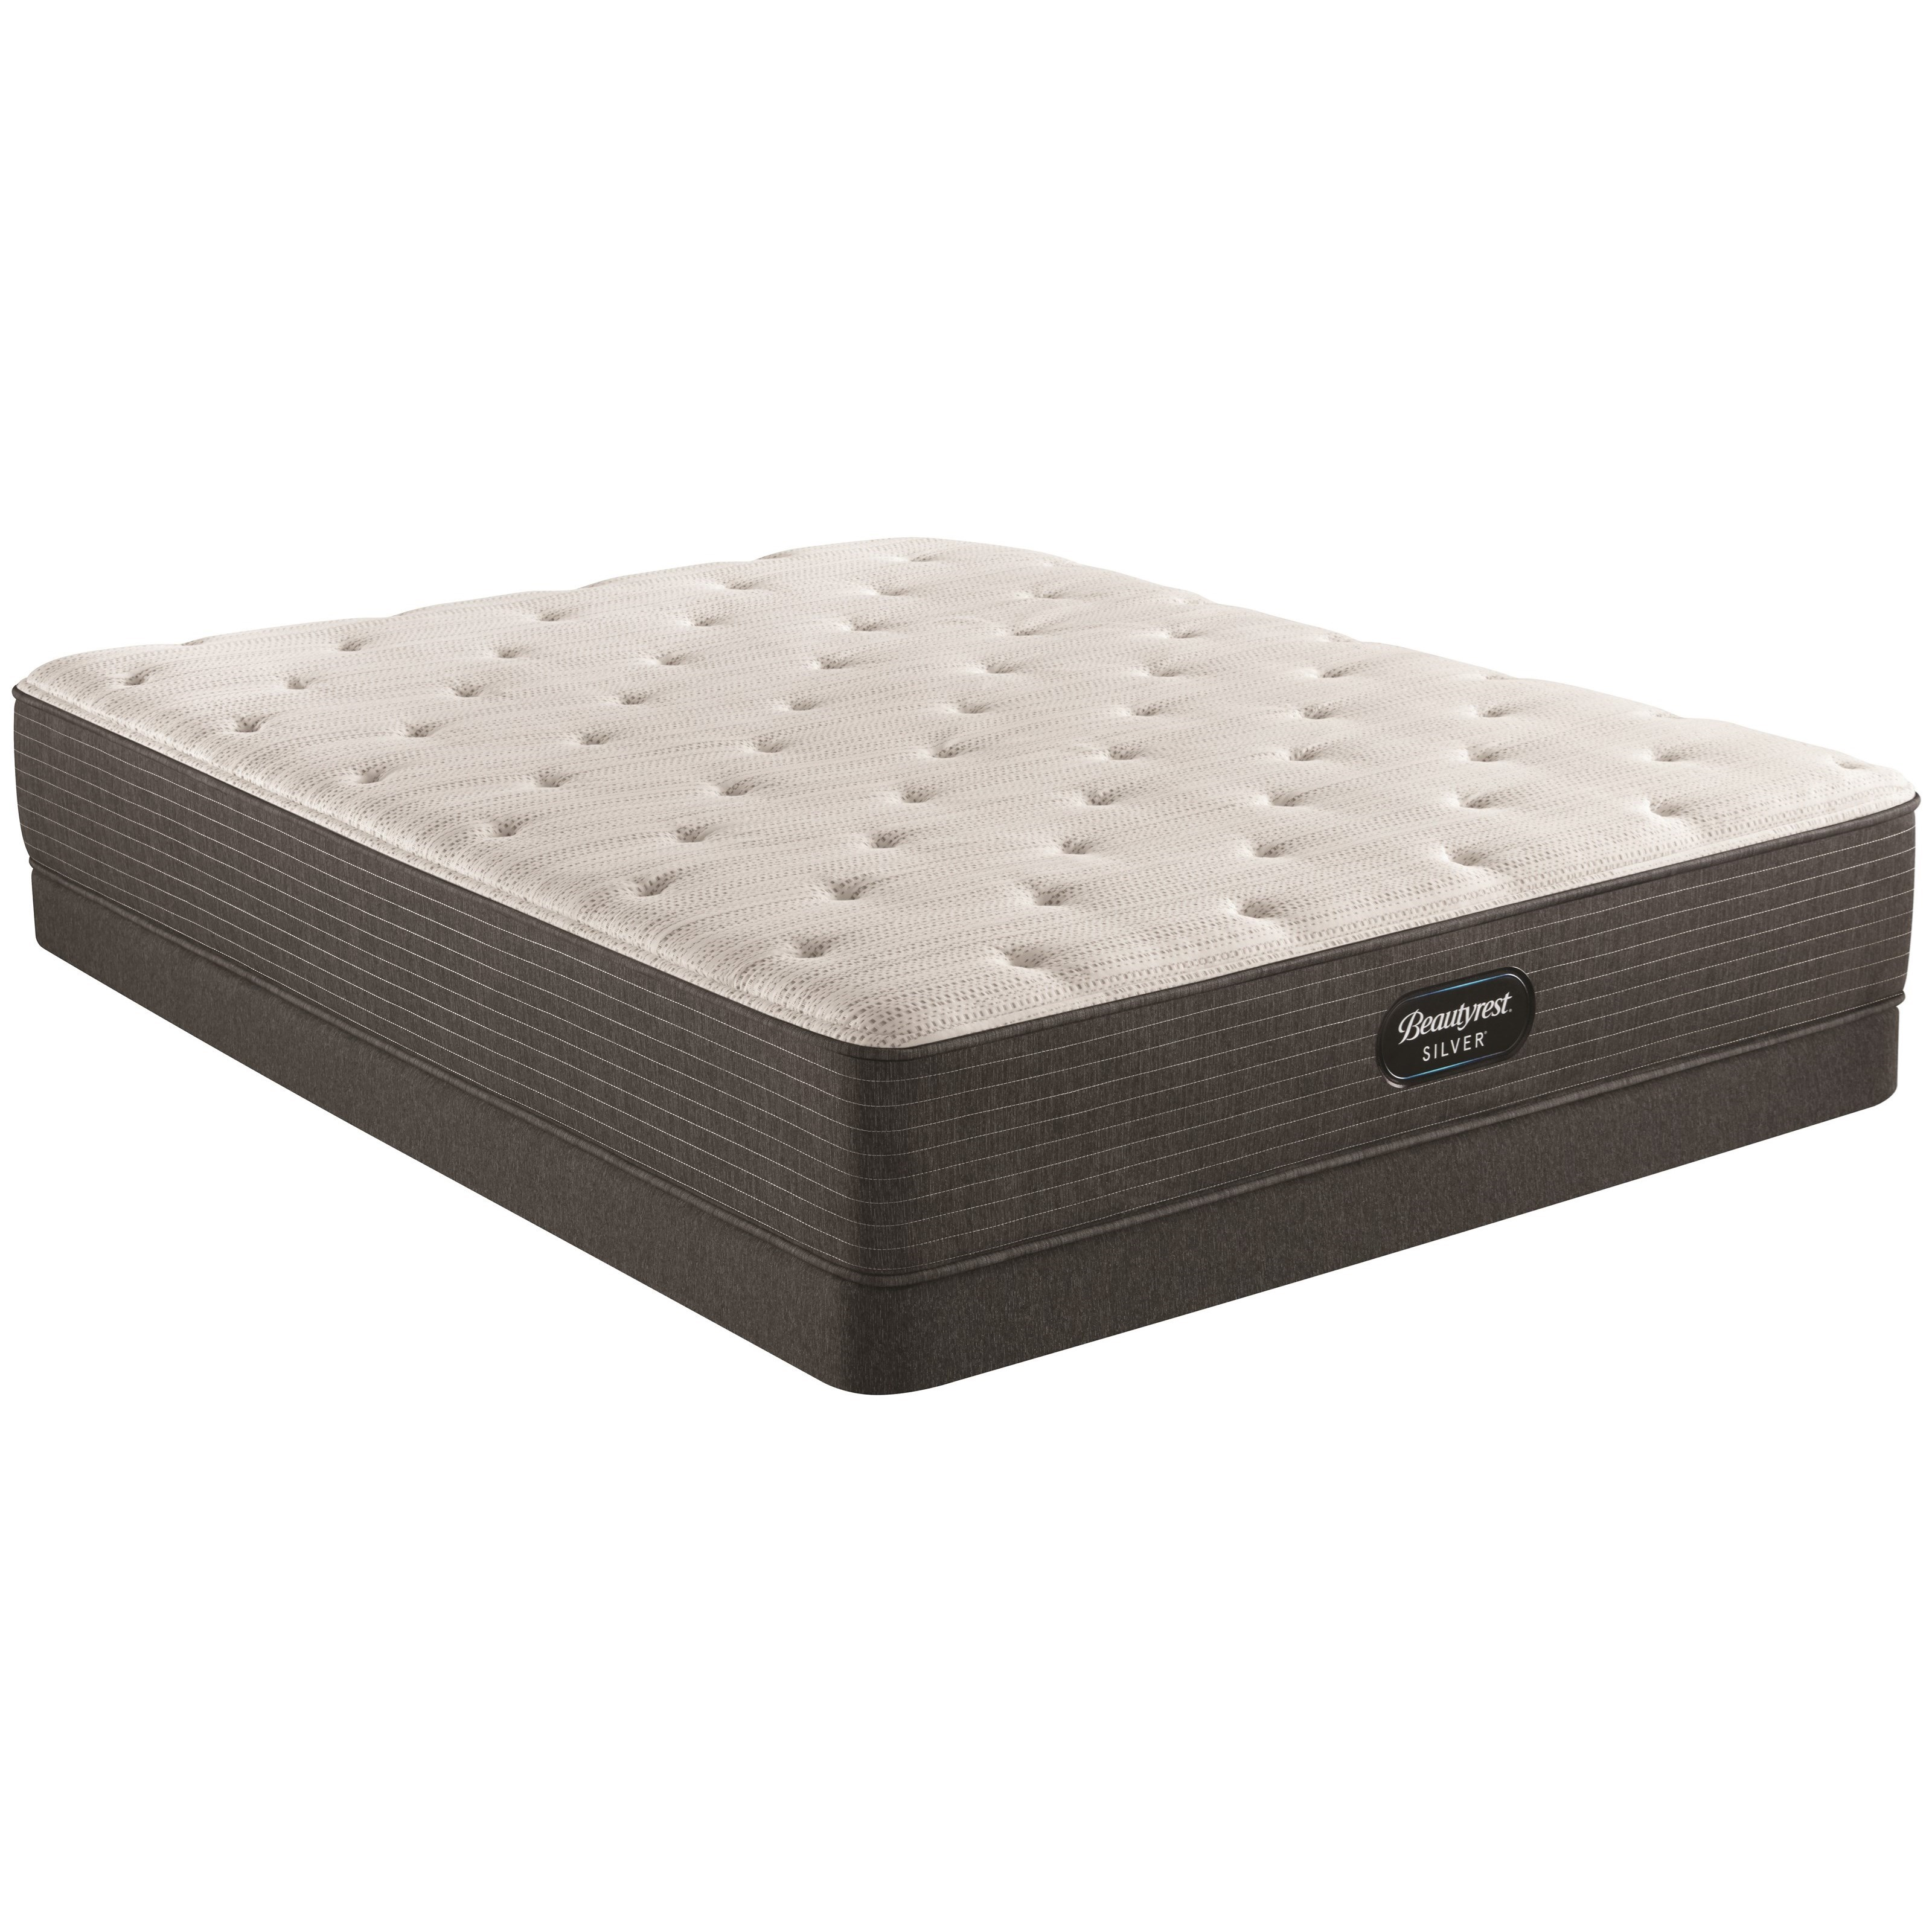 "BRS900 Medium King 12"" Pocketed Coil Low Pro Set by Beautyrest at SlumberWorld"